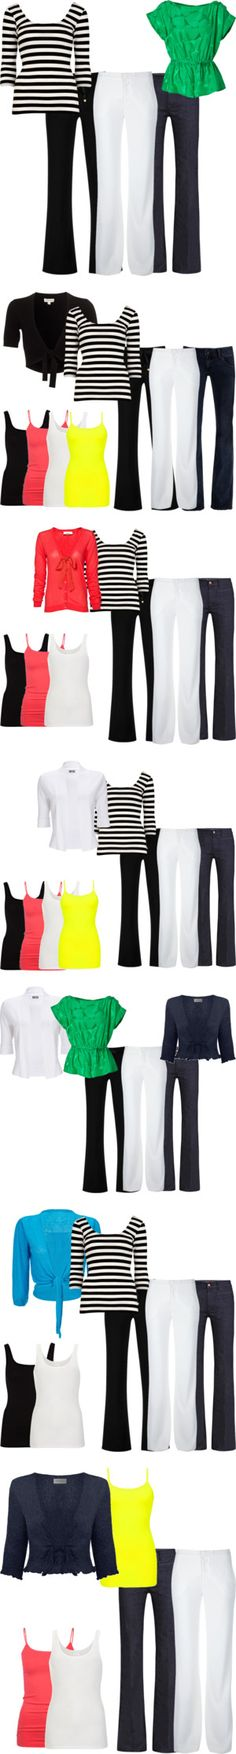 14 pieces - 72 outfits Core Wardrobe, Simple Wardrobe, Minimalist Wardrobe, Capsule Outfits, Capsule Wardrobe, Travel Wardrobe, Work Fashion, Fashion Outfits, Dyt Type 4 Clothes